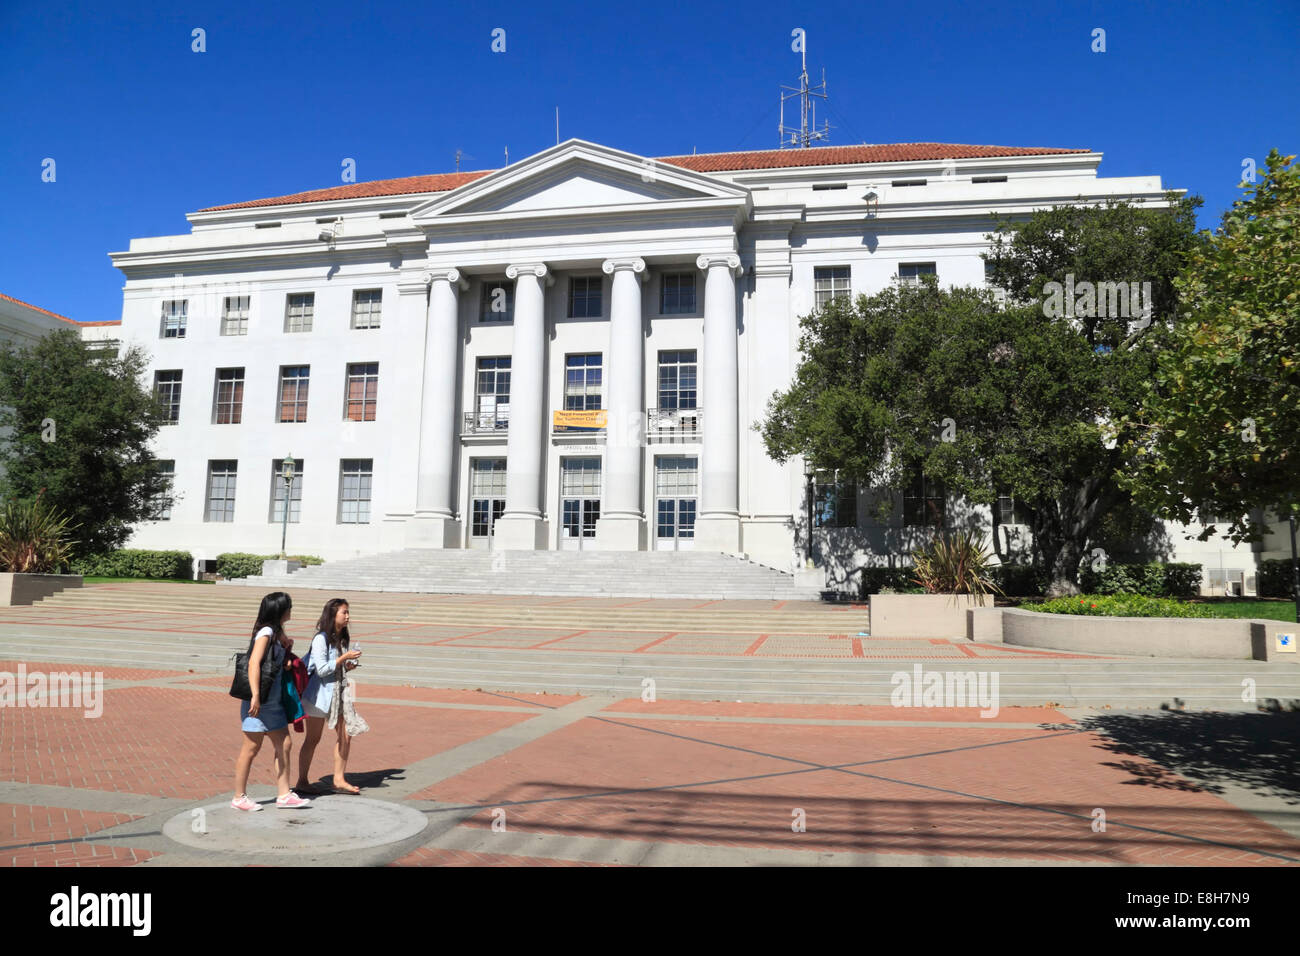 University of California, Berkeley, San Francisco, California, USA - Stock Image